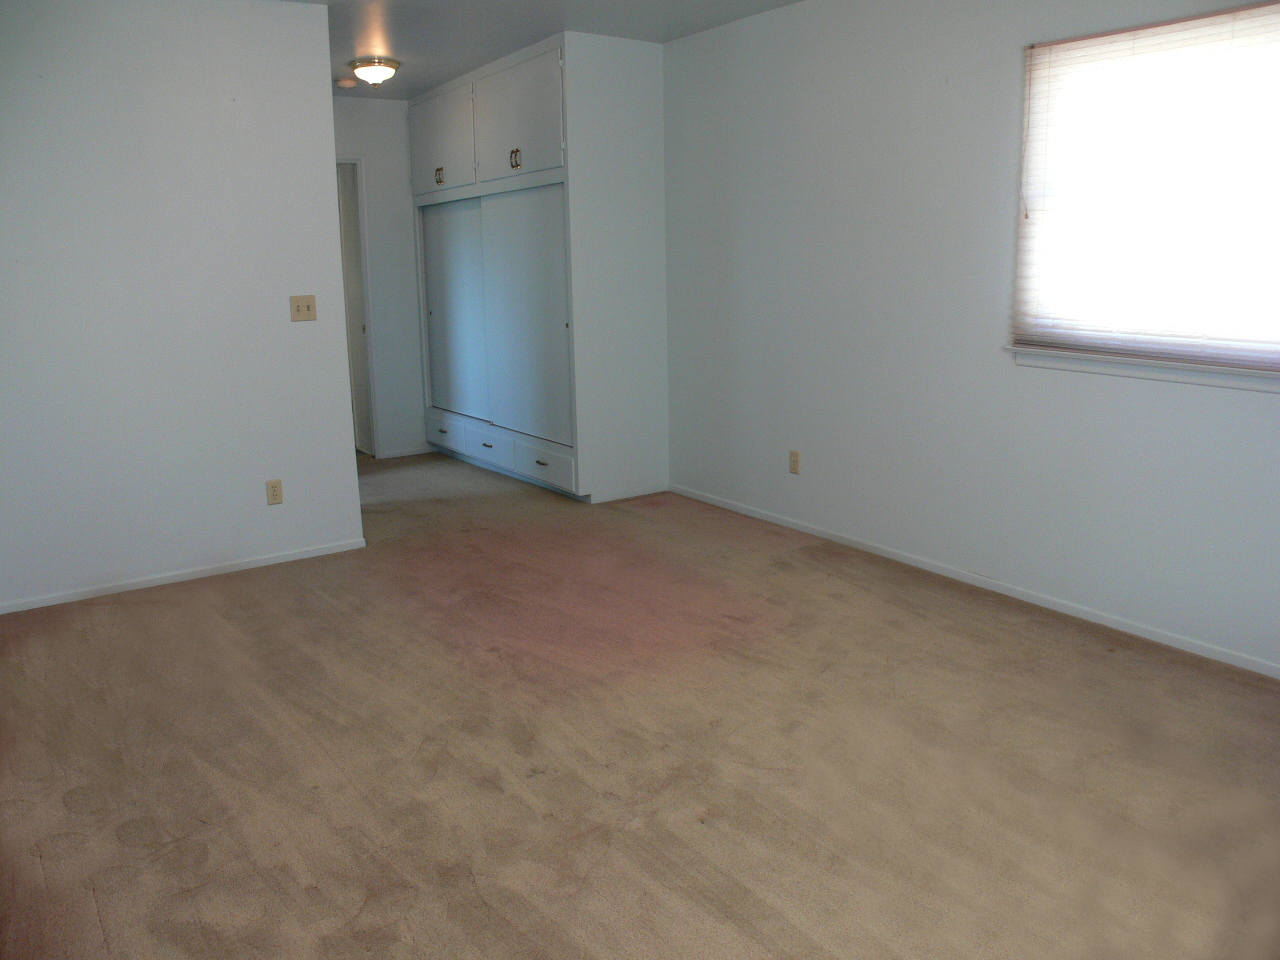 Spacious master bedroom with private 3/4 bathroom and large closet. Carpeting is sun-faded, but we're told there might be hardwood floors underneath!